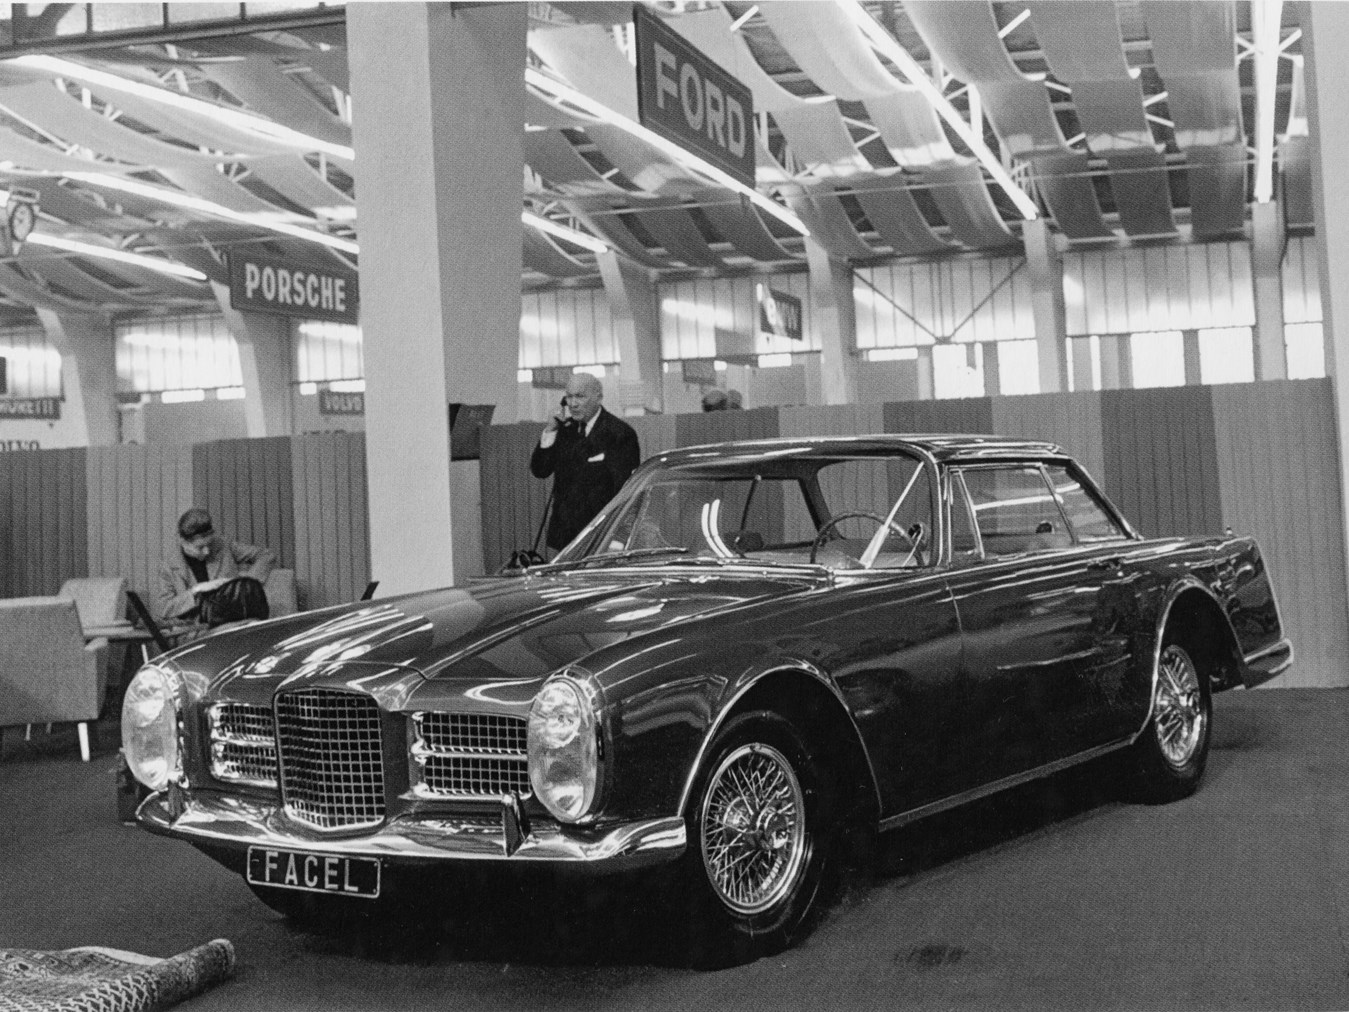 Chassis HK2B 171 at the 1963 Geneva Auto Show.